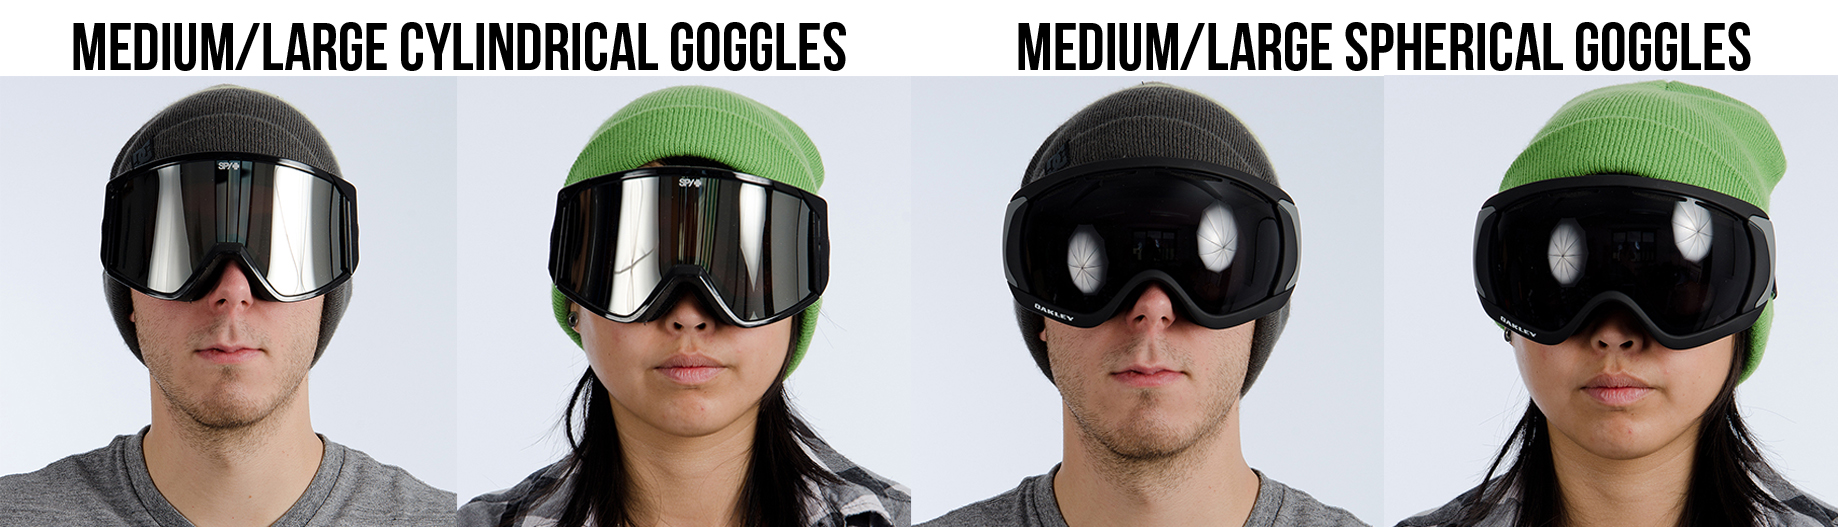 Medium Large Goggles